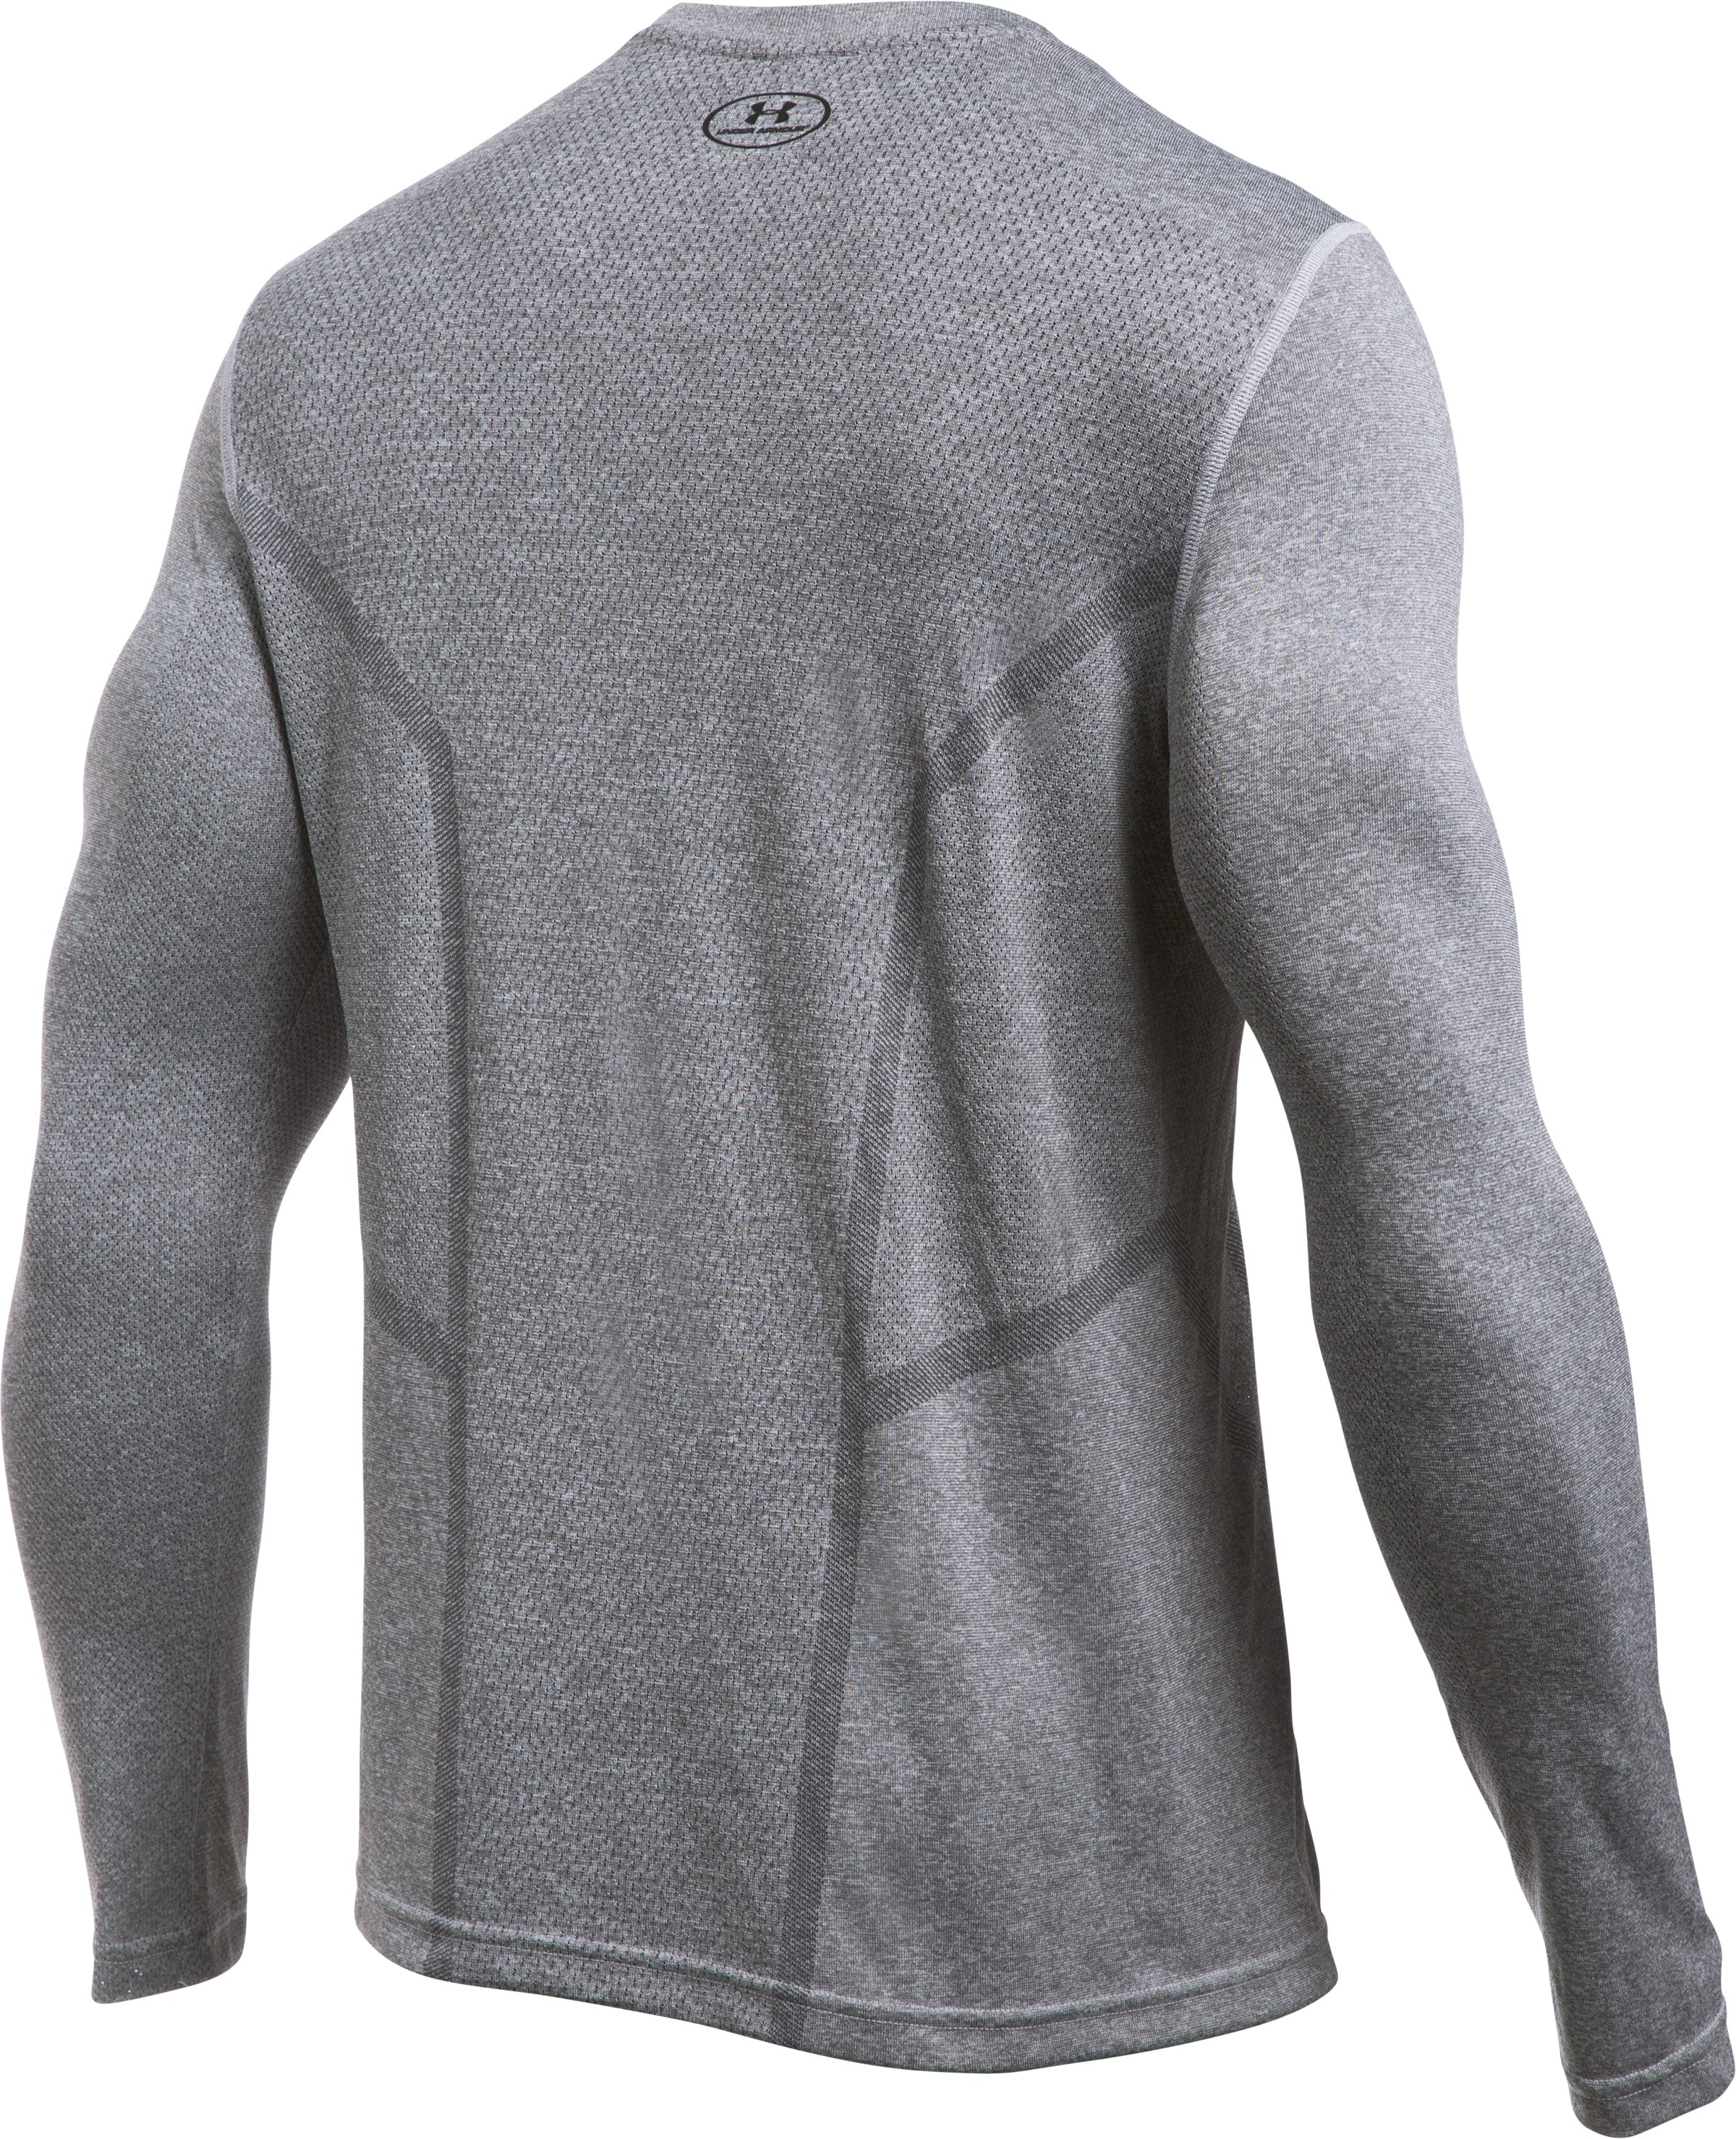 Men's UA Elevated Training Long Sleeve, AIR FORCE GRAY HEATHER